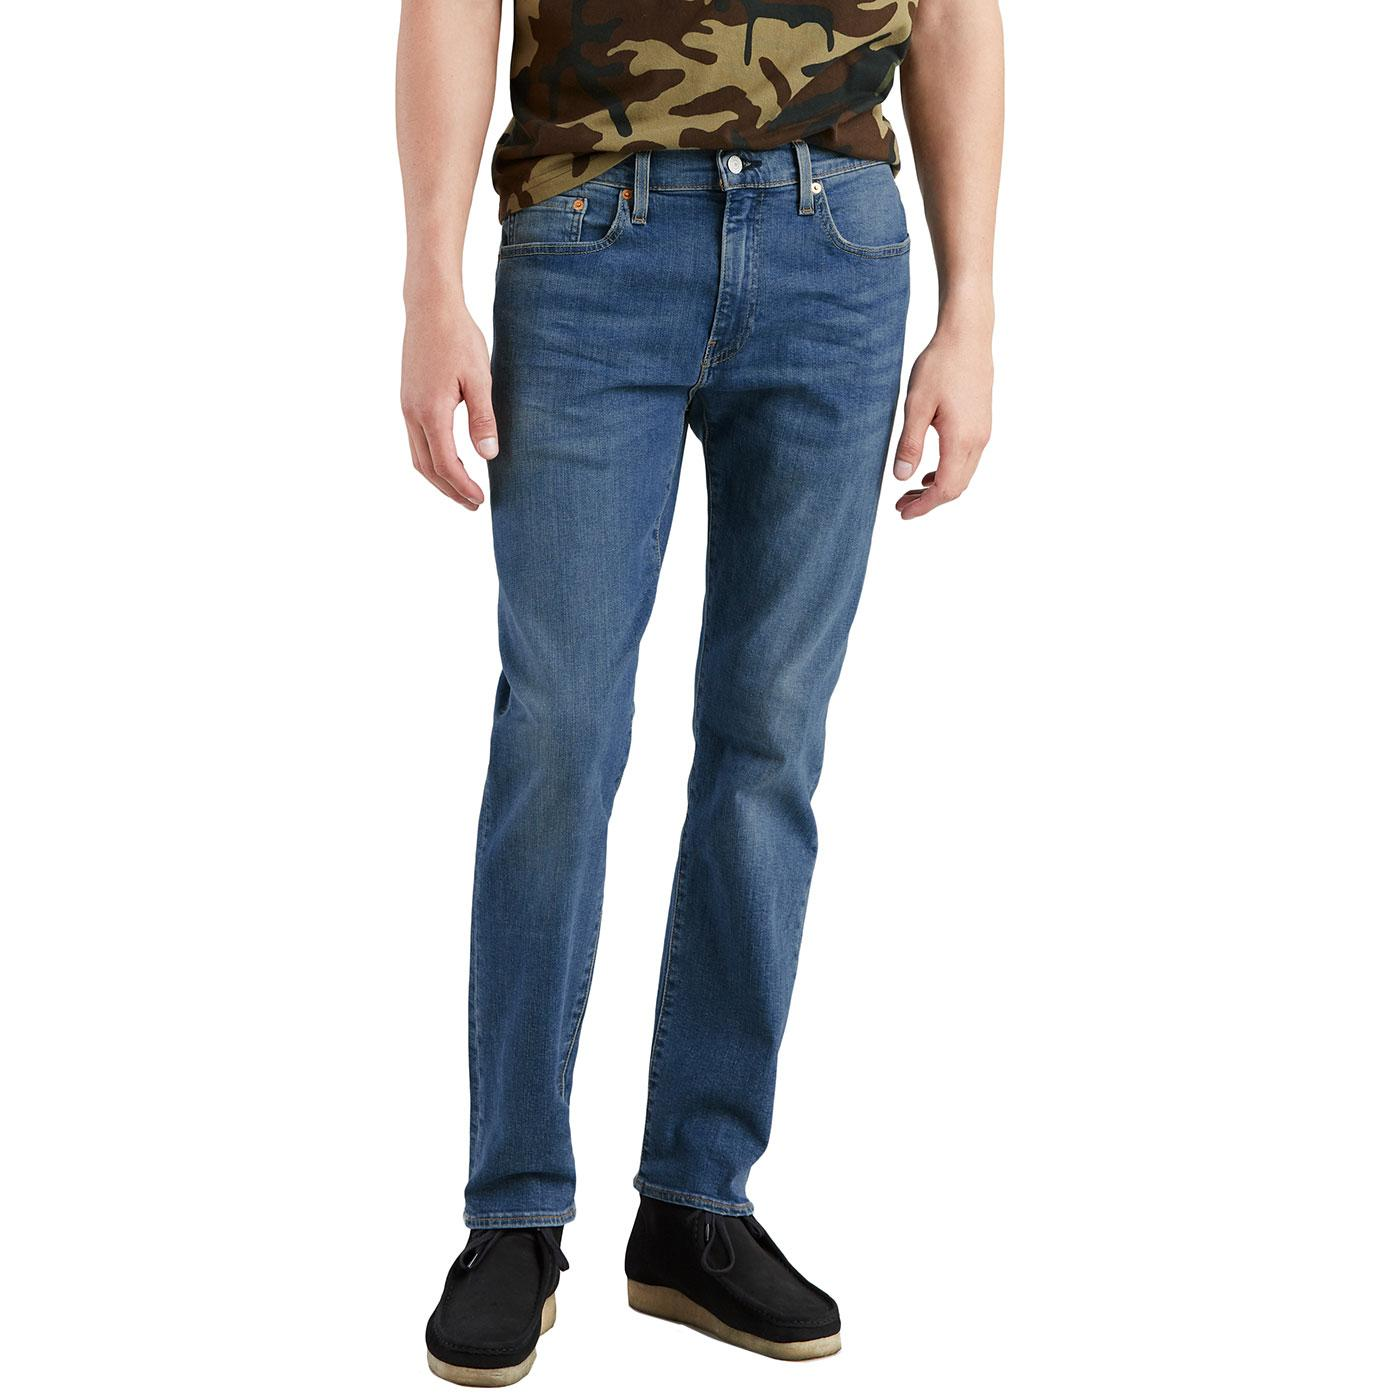 LEVI'S 502 Regular Taper Mod Jeans CROCODILE ADAPT